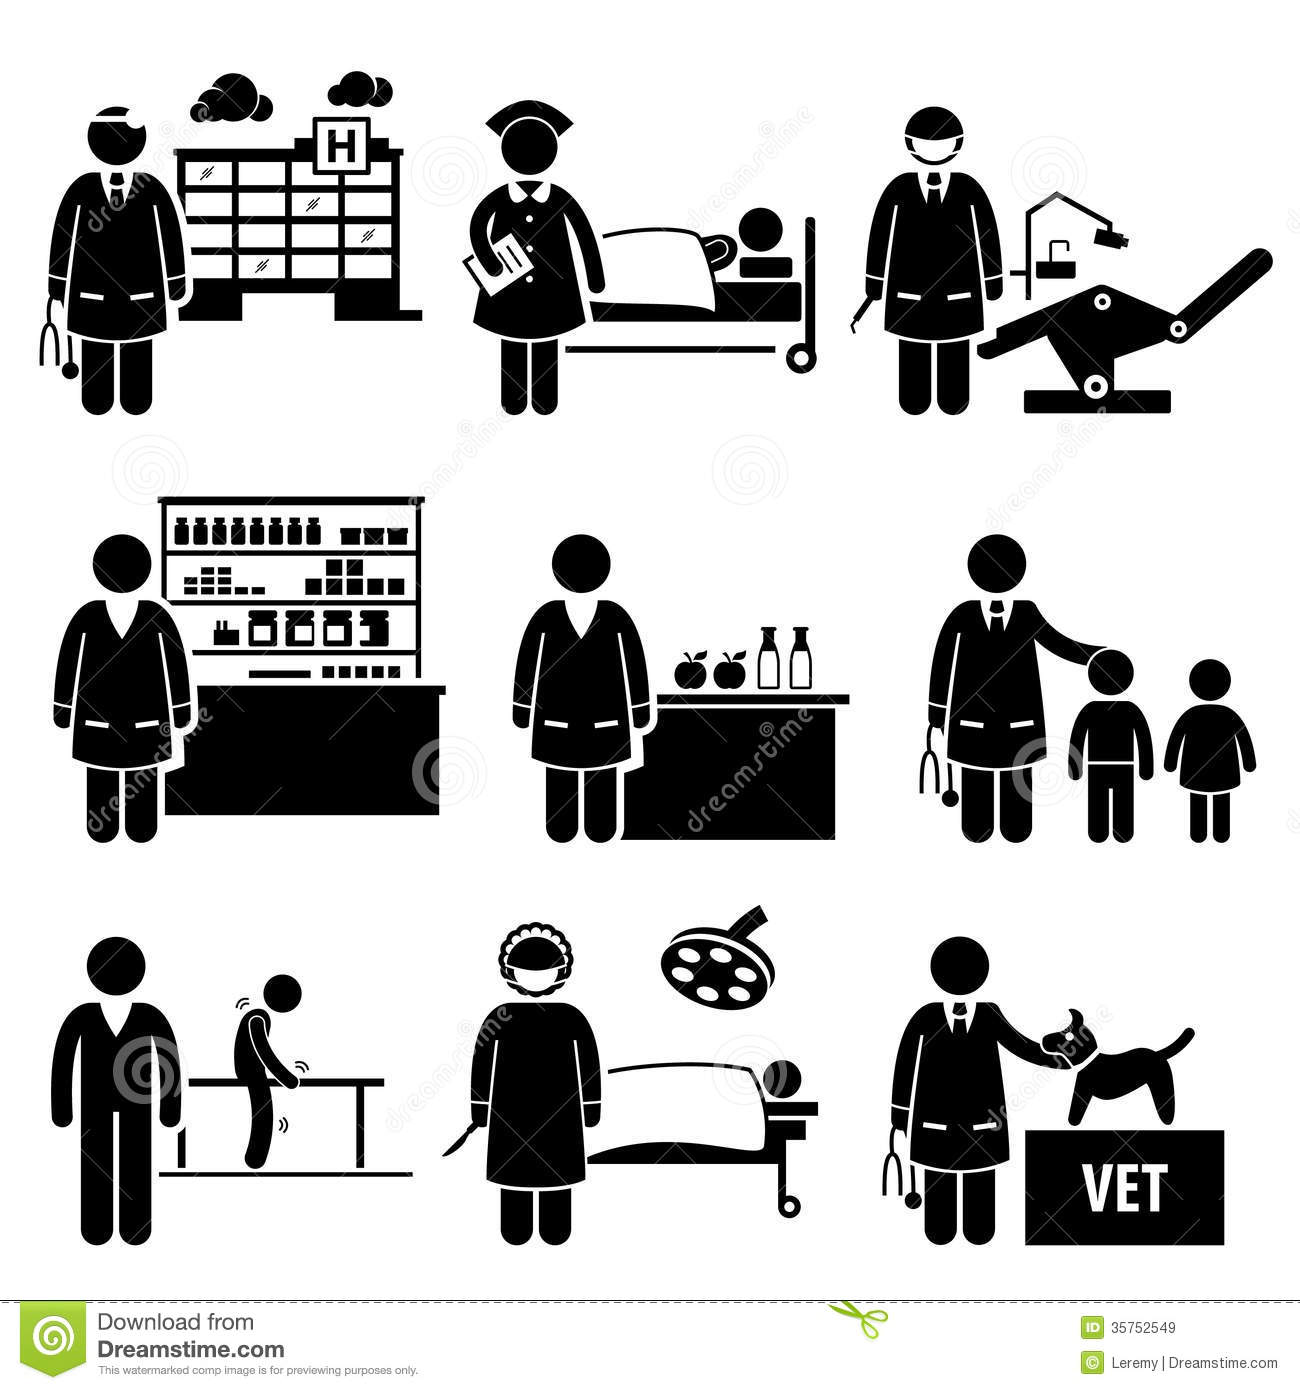 Raven 29r 6 0 2014 moreover Aqua Dama 30 2014 moreover 4300 2014 as well Royalty Free Stock Images Medical Healthcare Hospital Jobs Occupations Caree Set Human Pictograms Representing Professions People Image35752549 together with 7 6 Fx Wsd 2012. on back ache